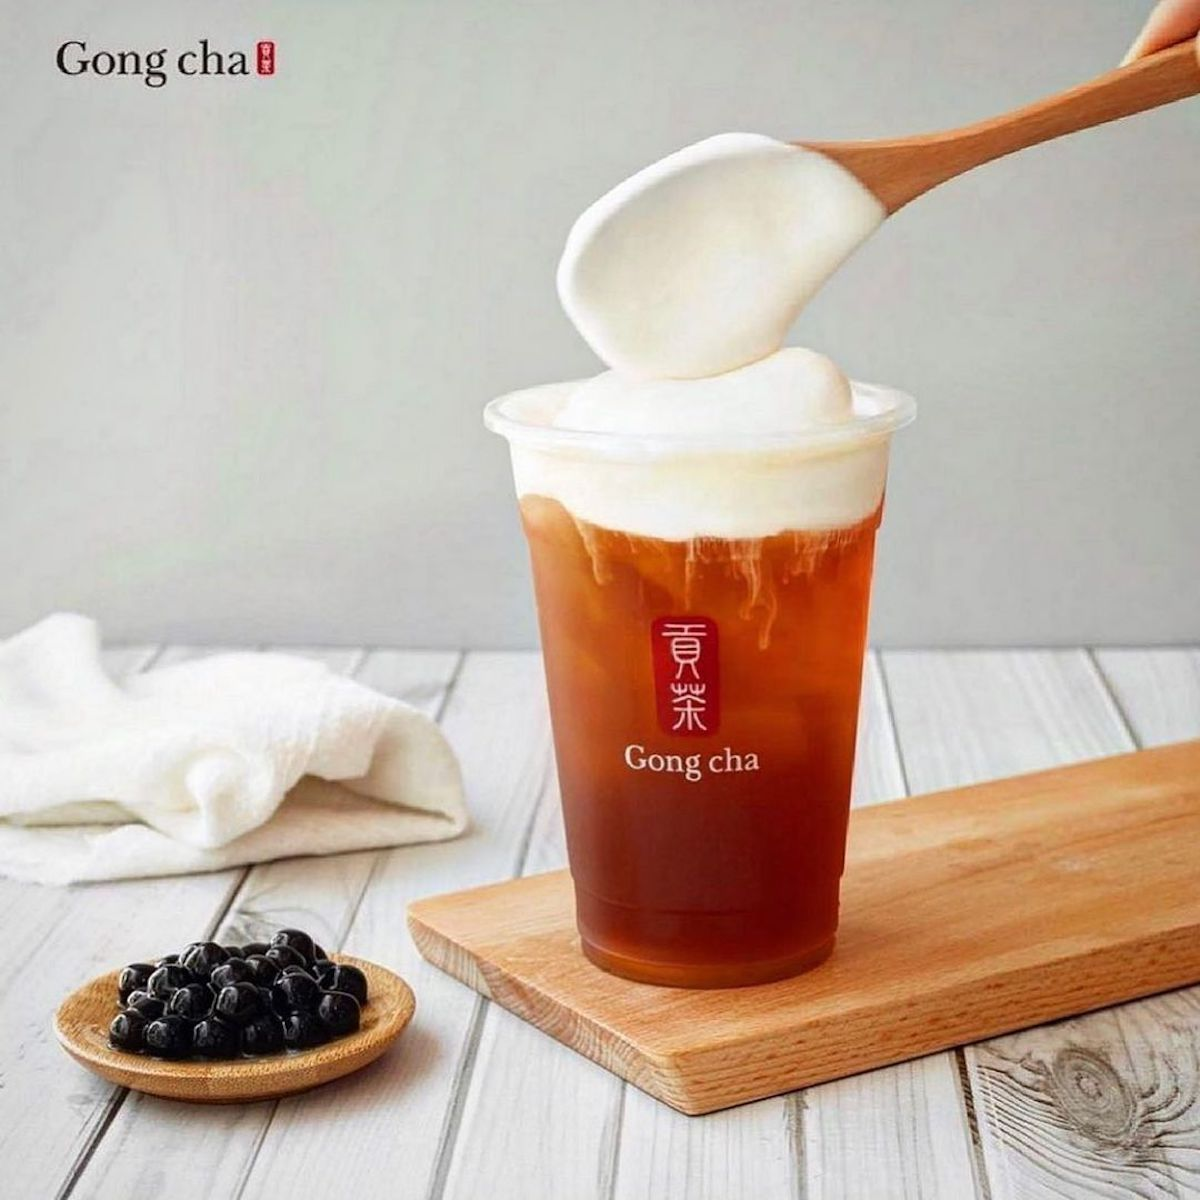 Chicago-Area To See First U.S. Corporate Gong Cha Plus More from What Now Media Group's Weekly Pre-Opening Restaurant News Report